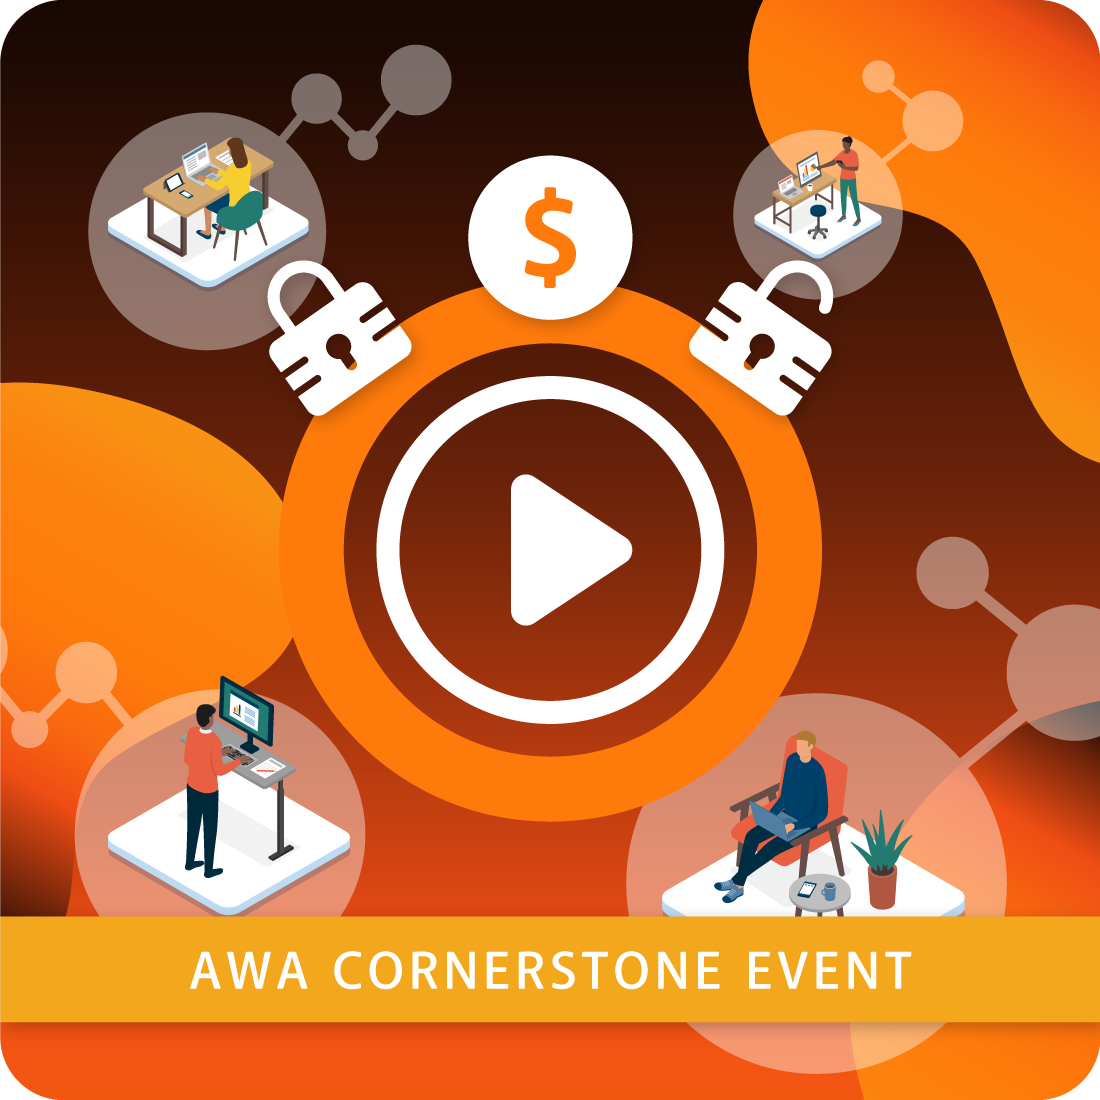 AWA Cornerstone Event #1 - Overcoming the Fear Factor: How to Engage Stakeholders in a Feedback Loop that Enhances Culture, Builds Trust and Maintains Vision and Goal Clarity.